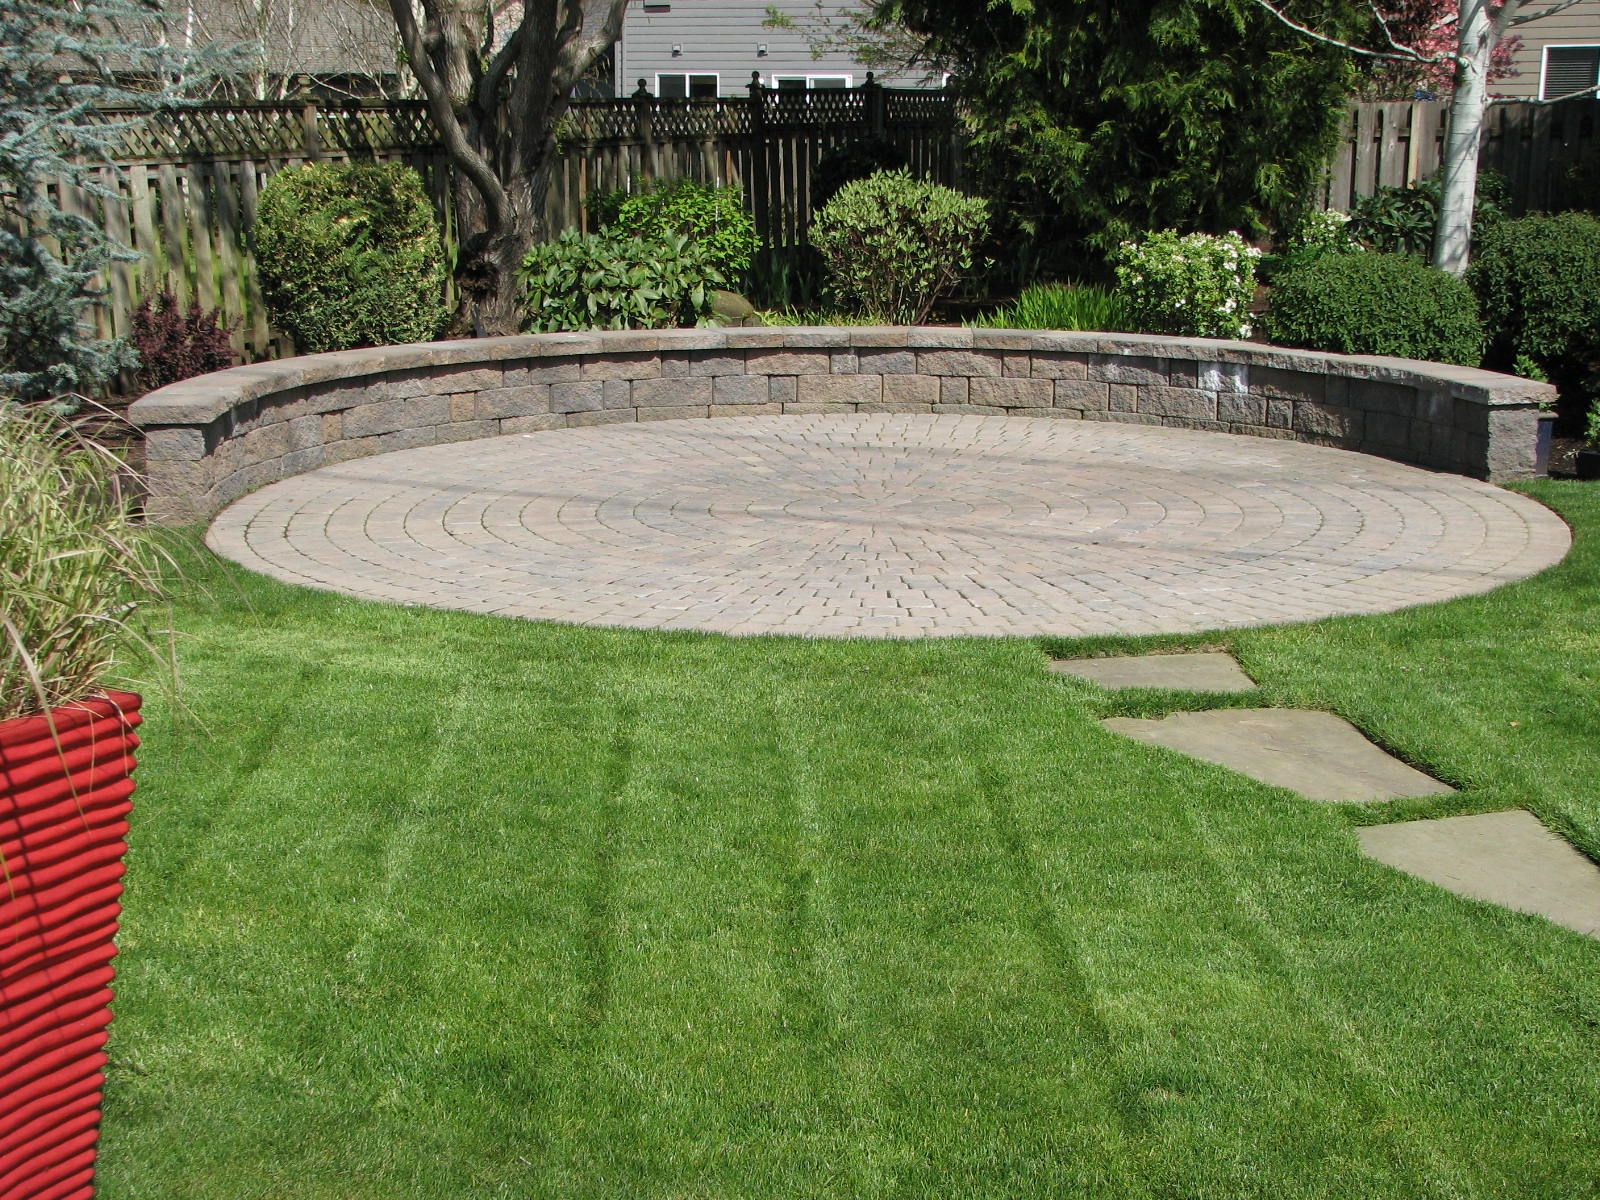 Lovely A Circular Paver Patio And Seating Wall Create A Destination And Usable  Space In This Backyard